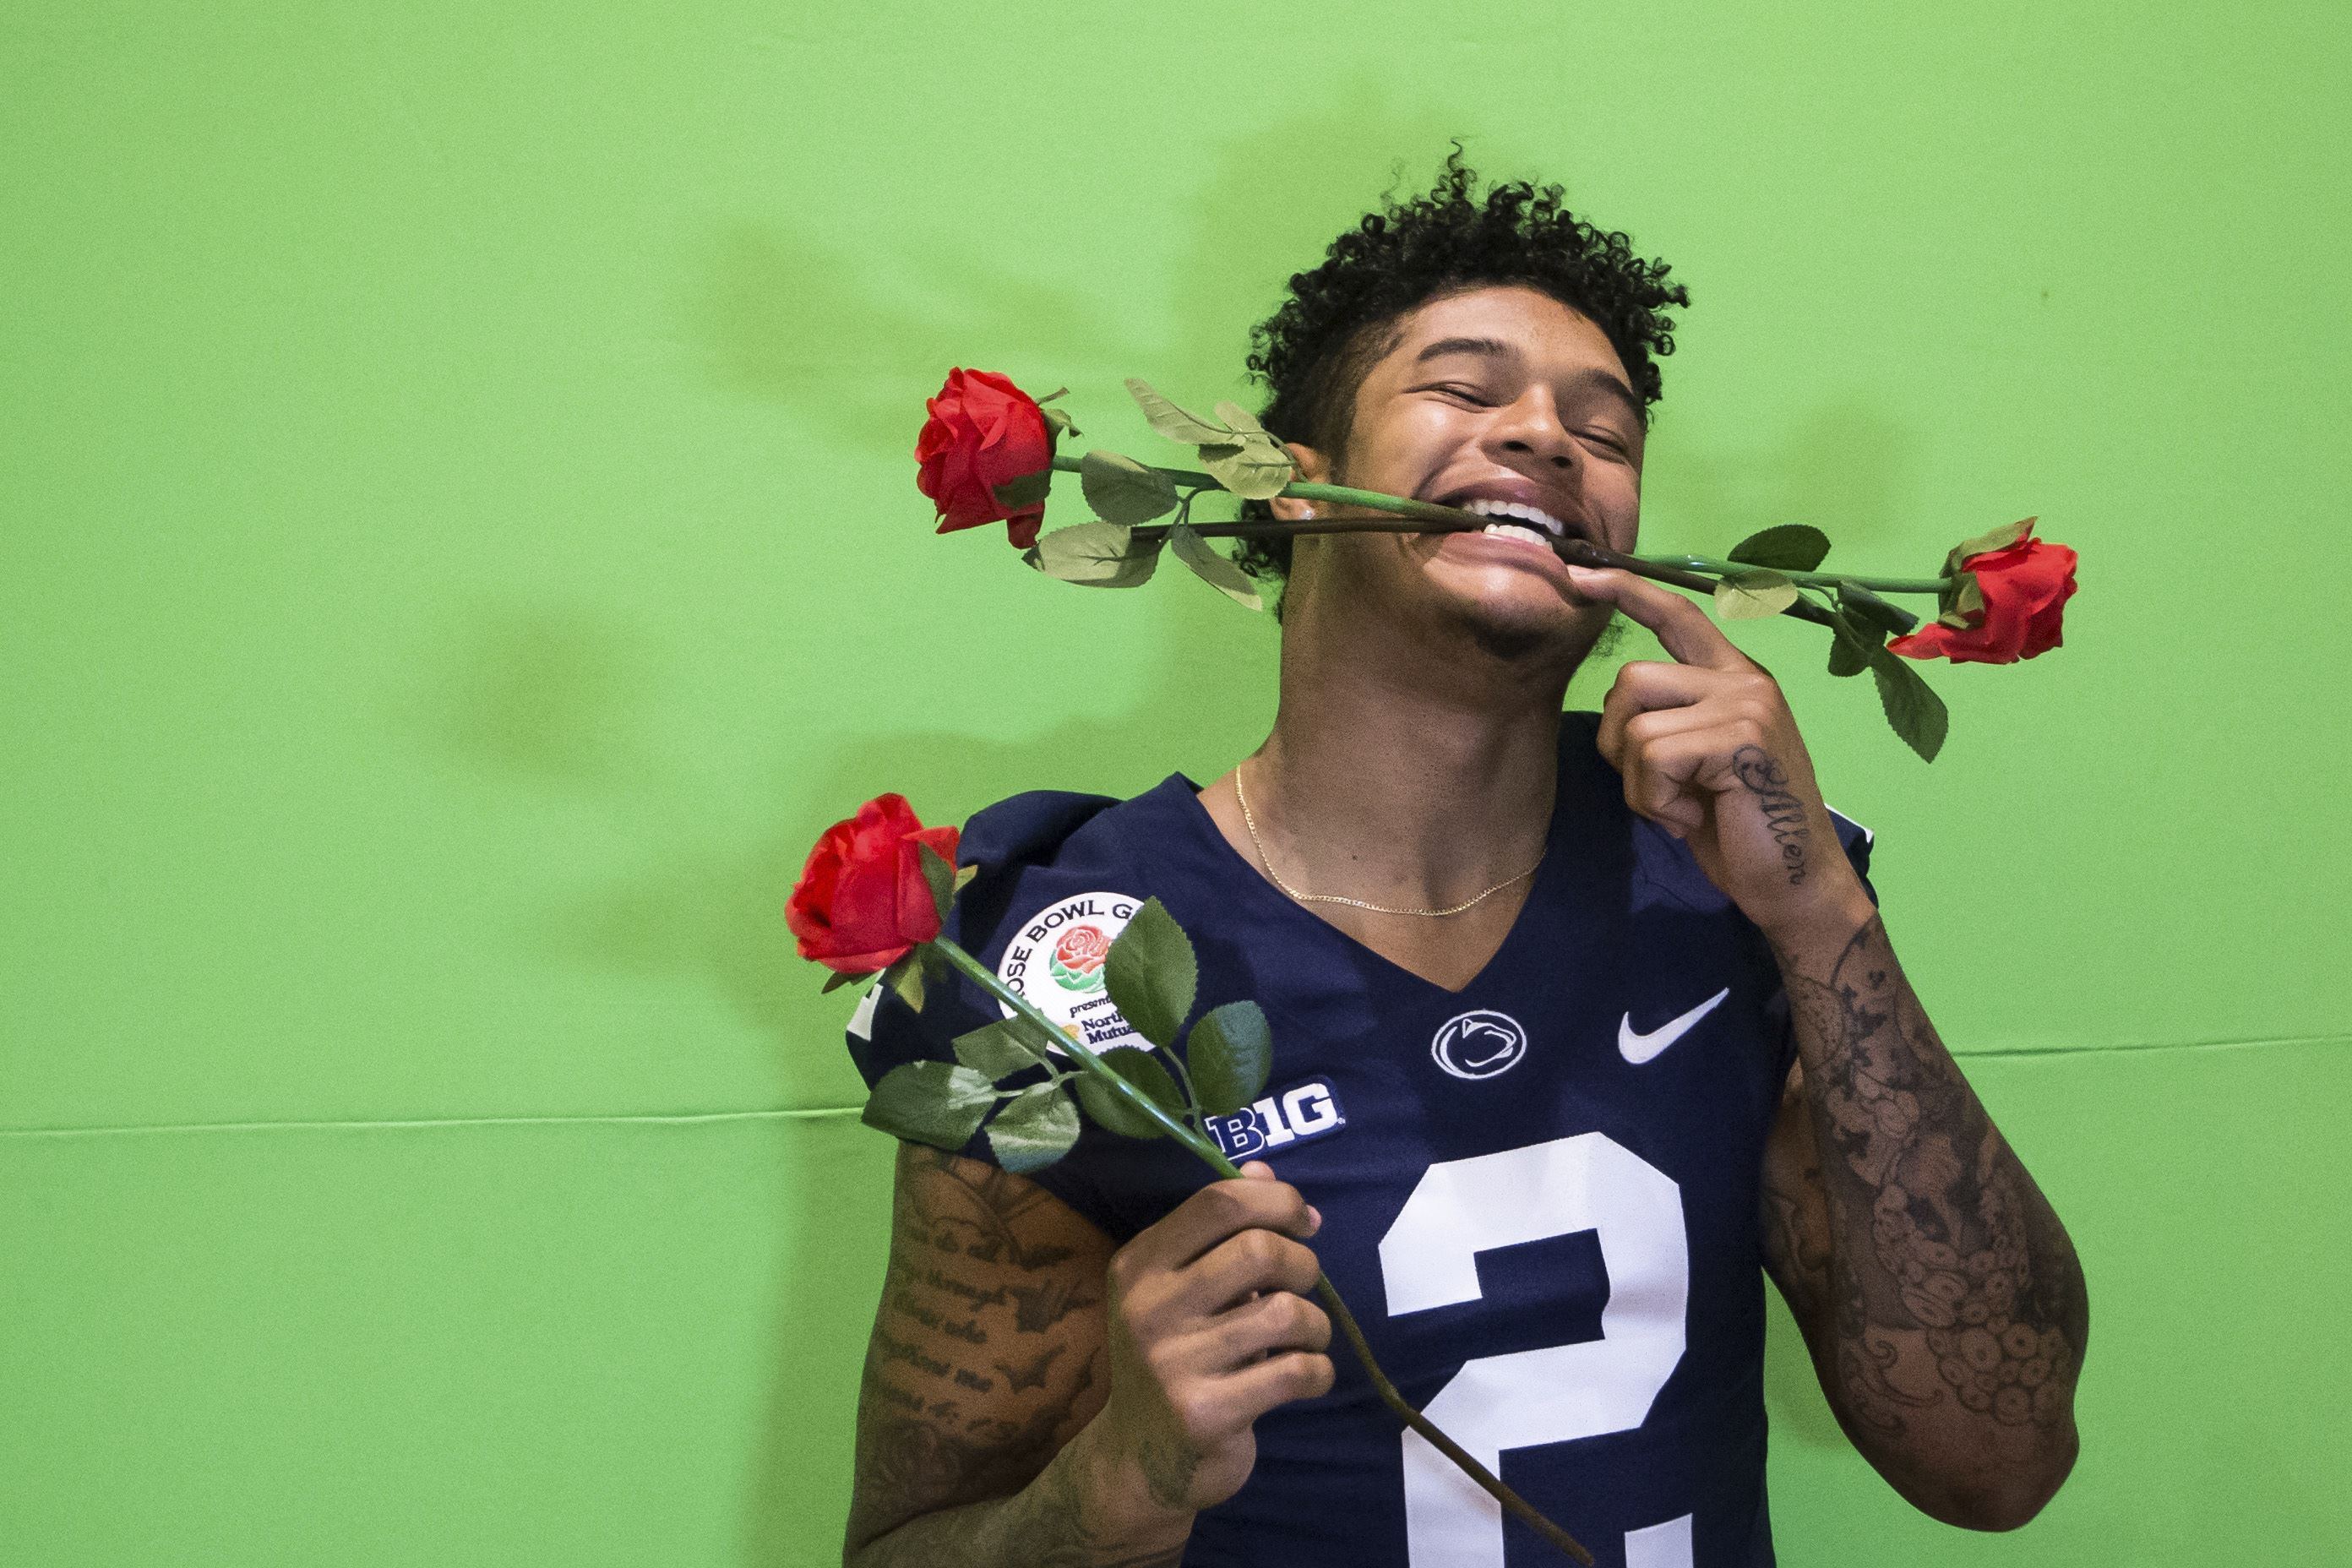 Penn State aims to contain USC's Jackson in Rose Bowl